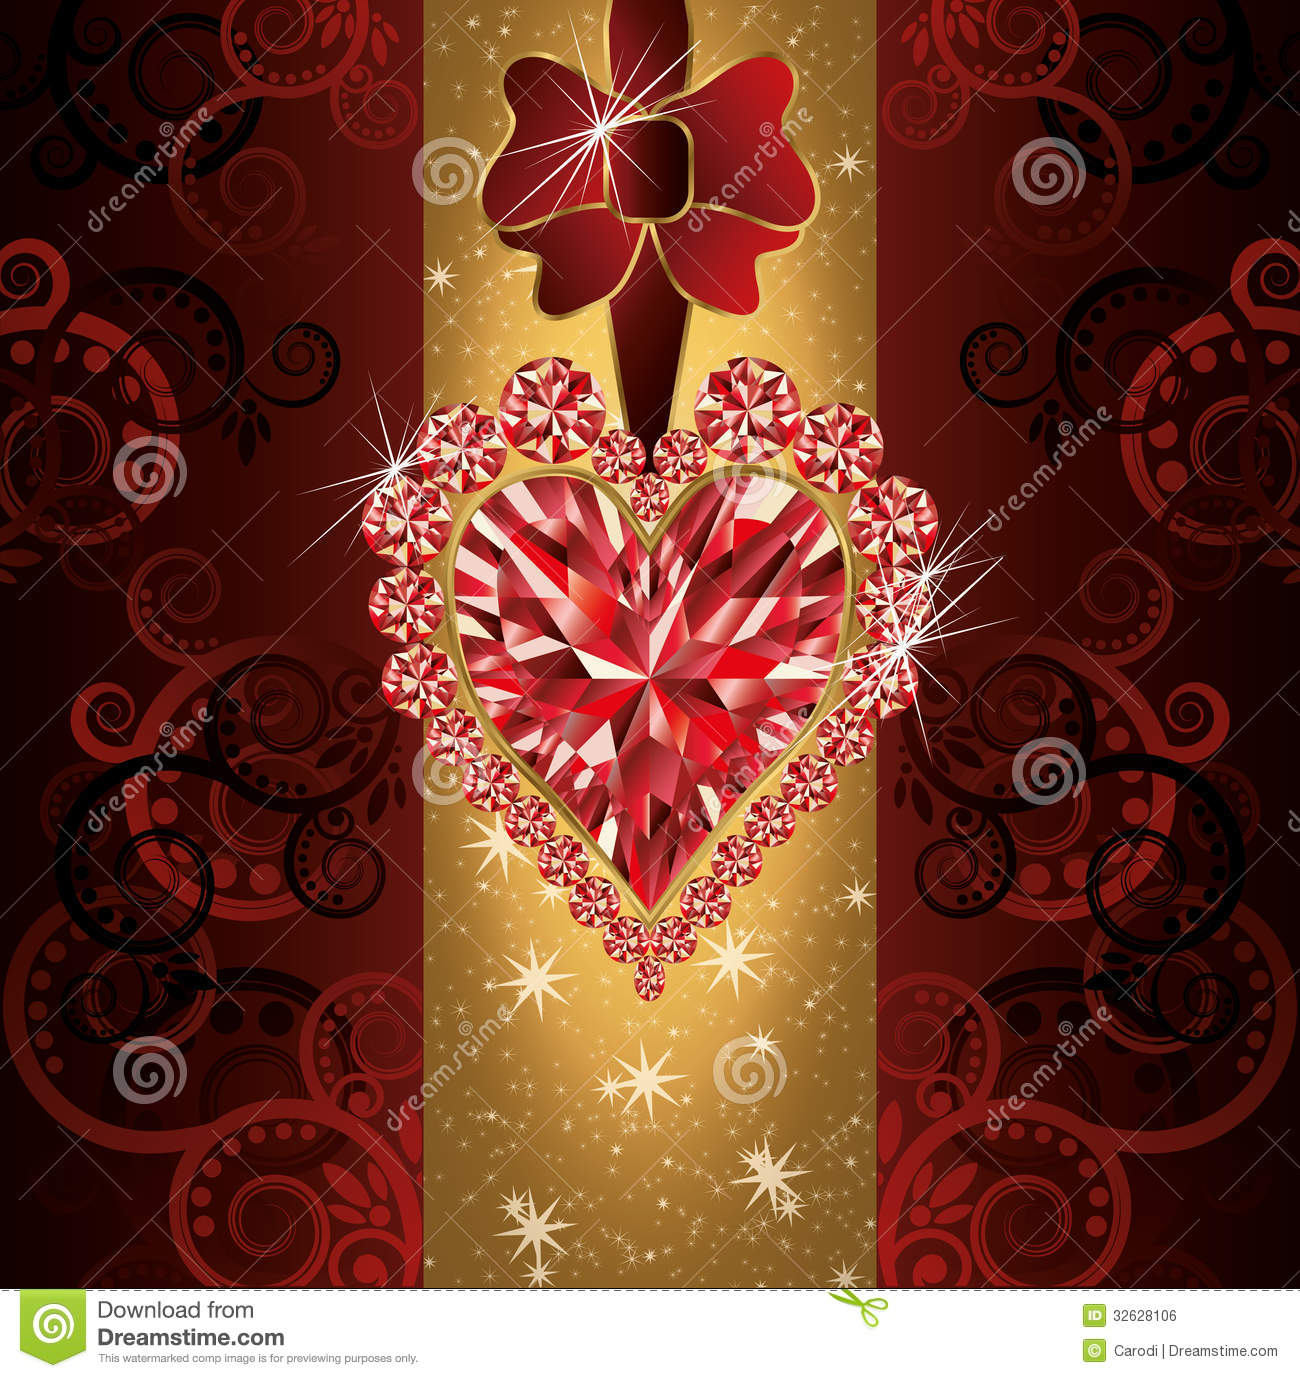 Love Wedding Invitation Card Stock Vector - Illustration of heart ...